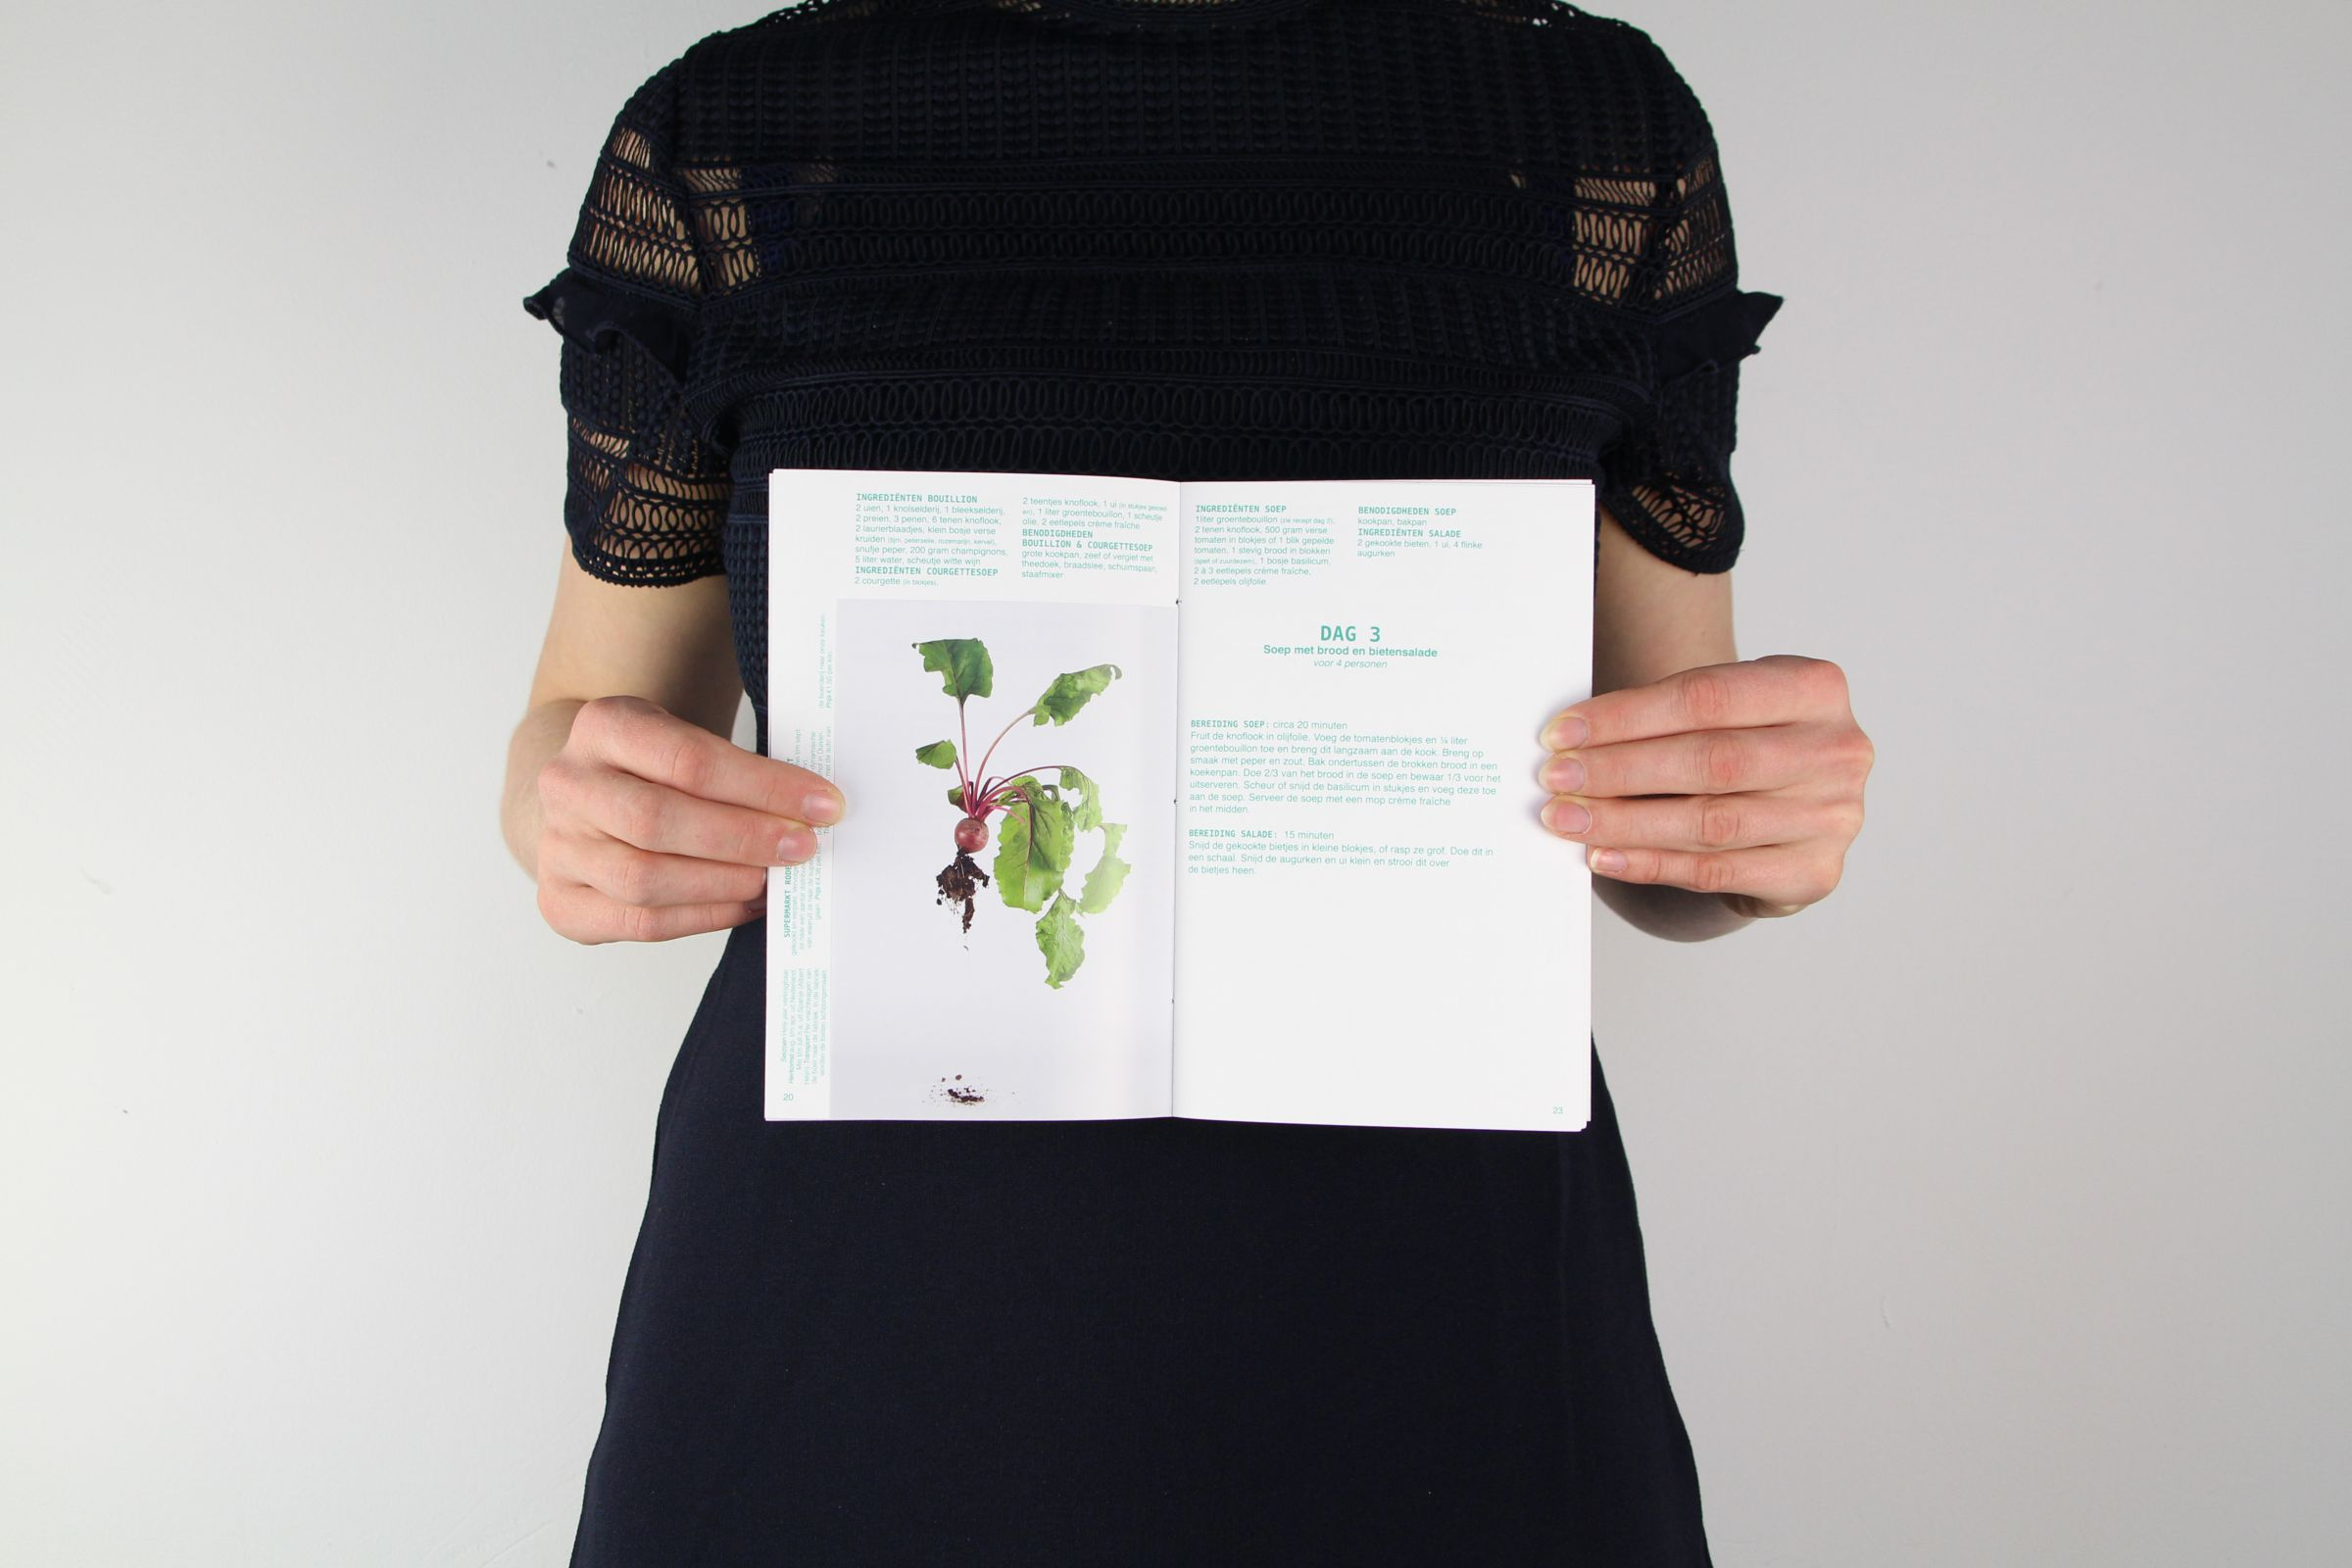 dynamic food essays voedselsysteem lokaal biologisch  graphic design studio de vormforensen by Annelou van Griensven Anne-Marie Geurink sandra holleman Bookdesign Arnhem graphic anthropology boekontwerp arnhem kookboek voedselrelatie foodies uitgever grafisch ontwerp boekontwerp